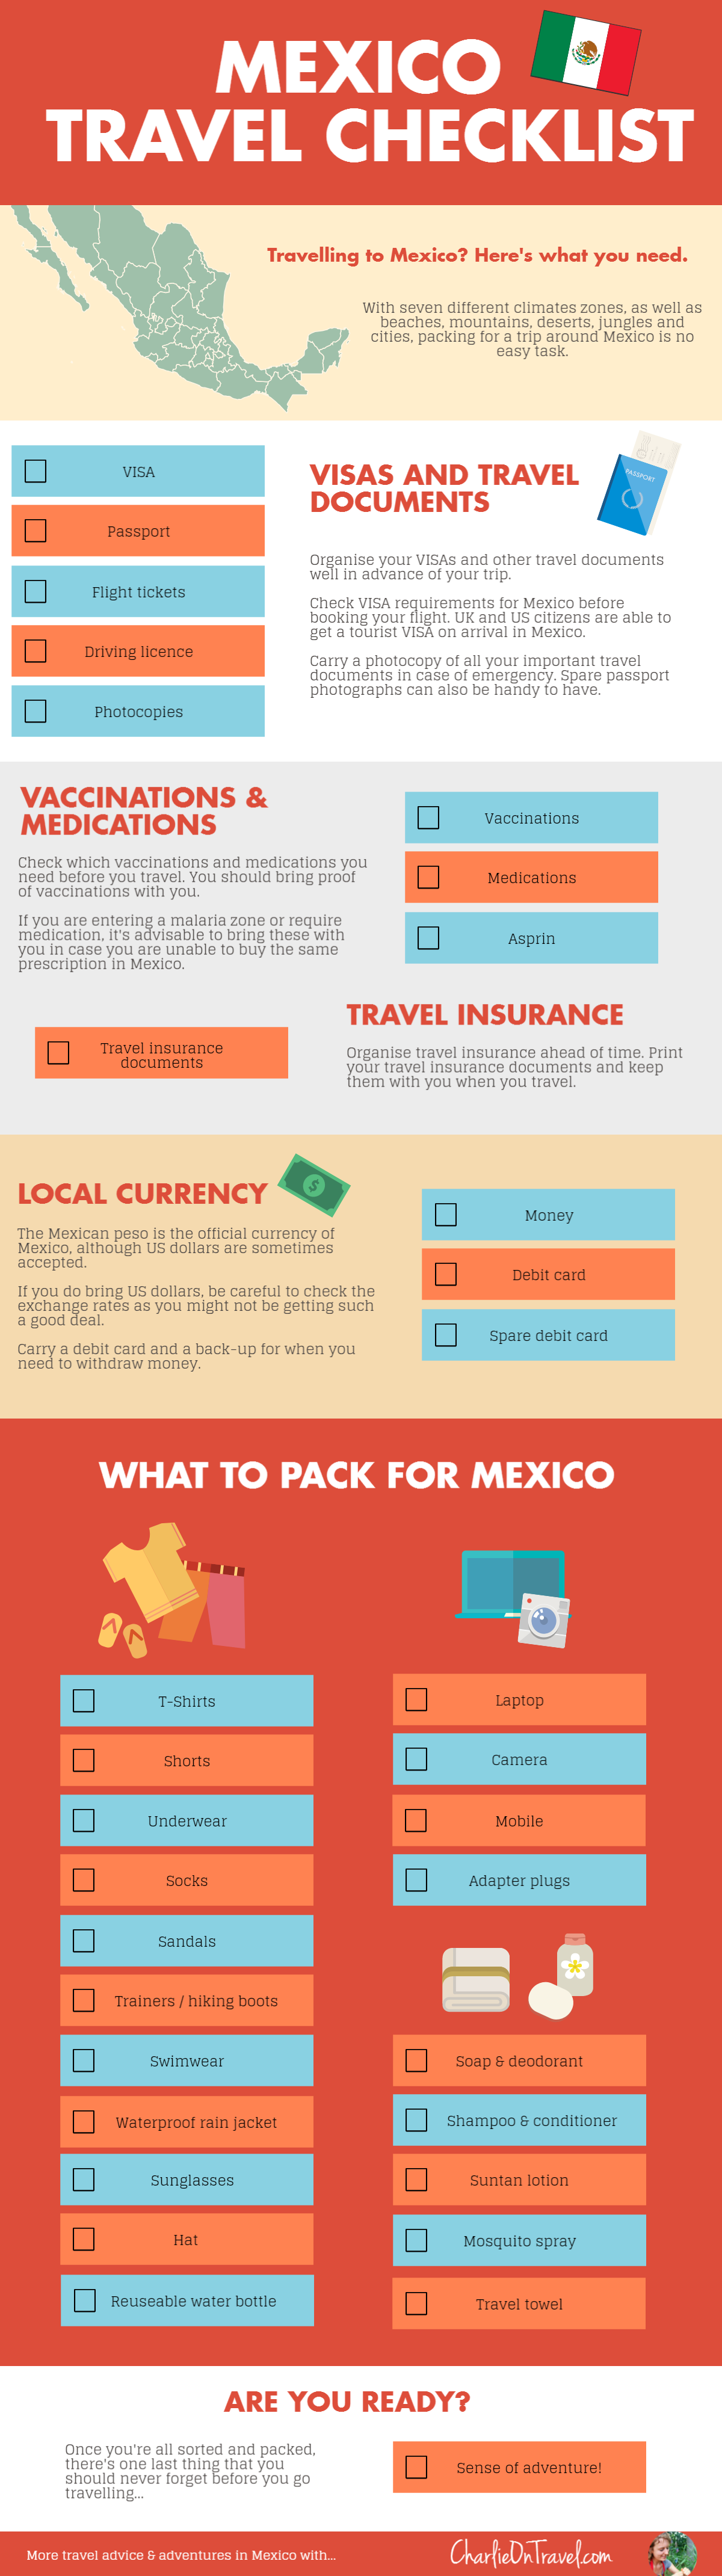 mexico travel checklist what to pack charlie on travel